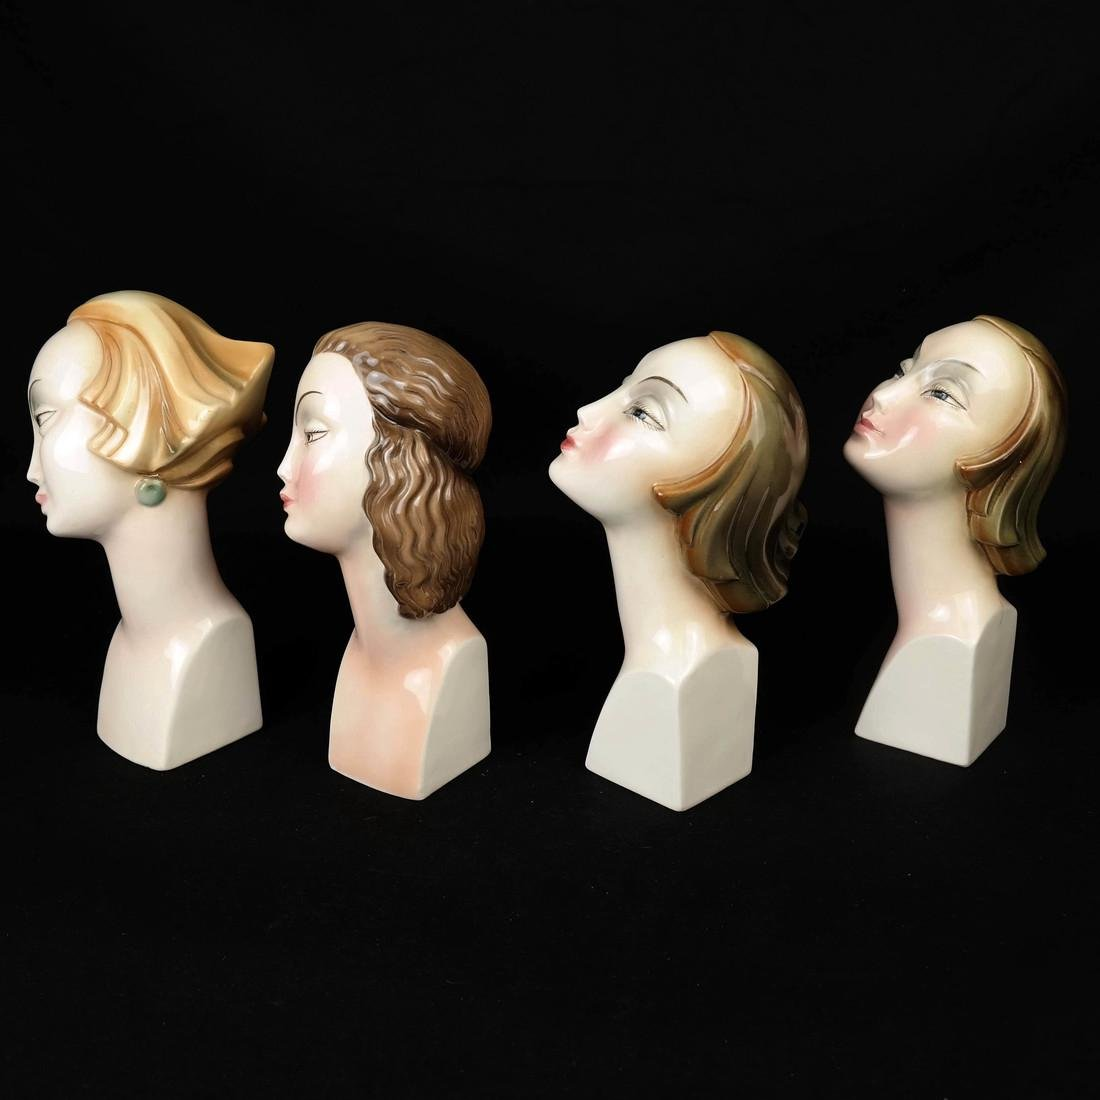 Four Art Deco Style HERTWIG German Female Busts - 2